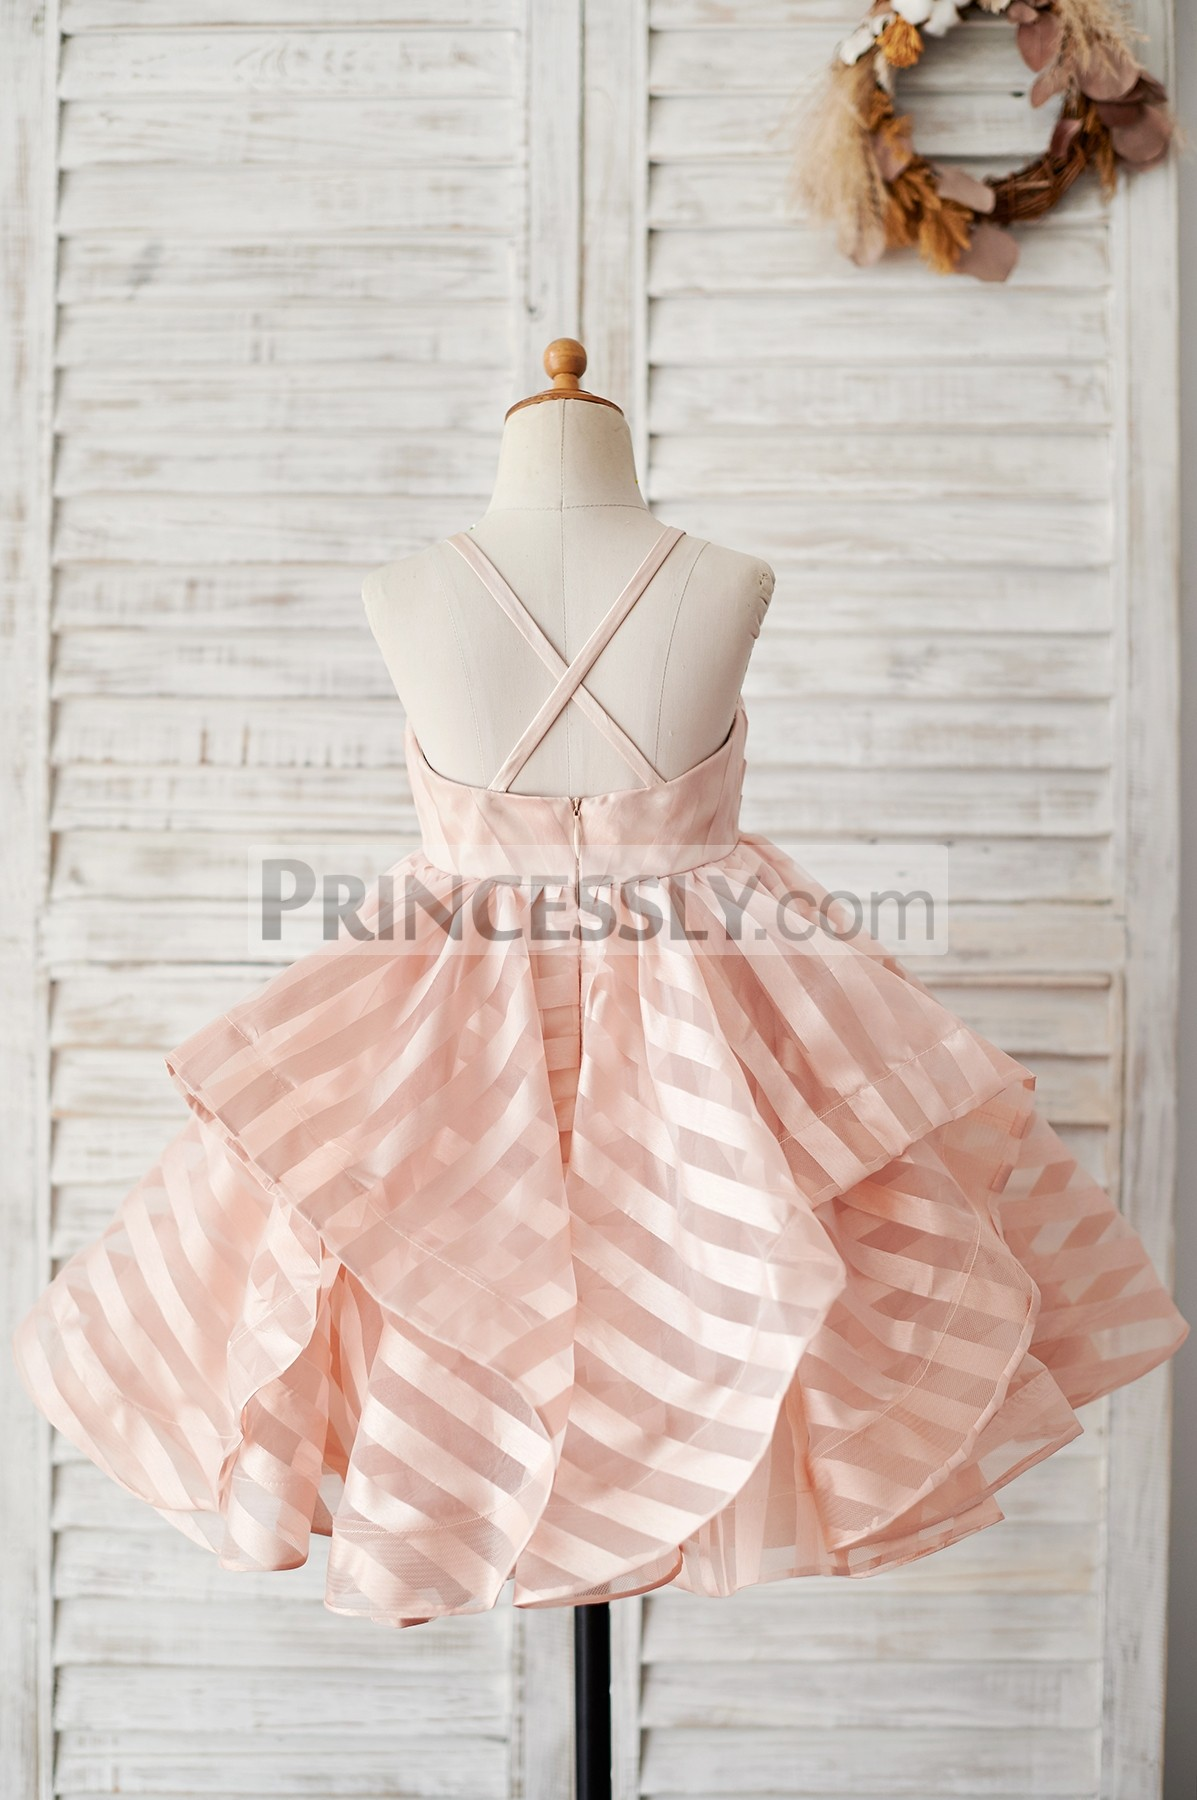 Spaghetti straps cross back peach pink stripes organza wedding baby girl dress